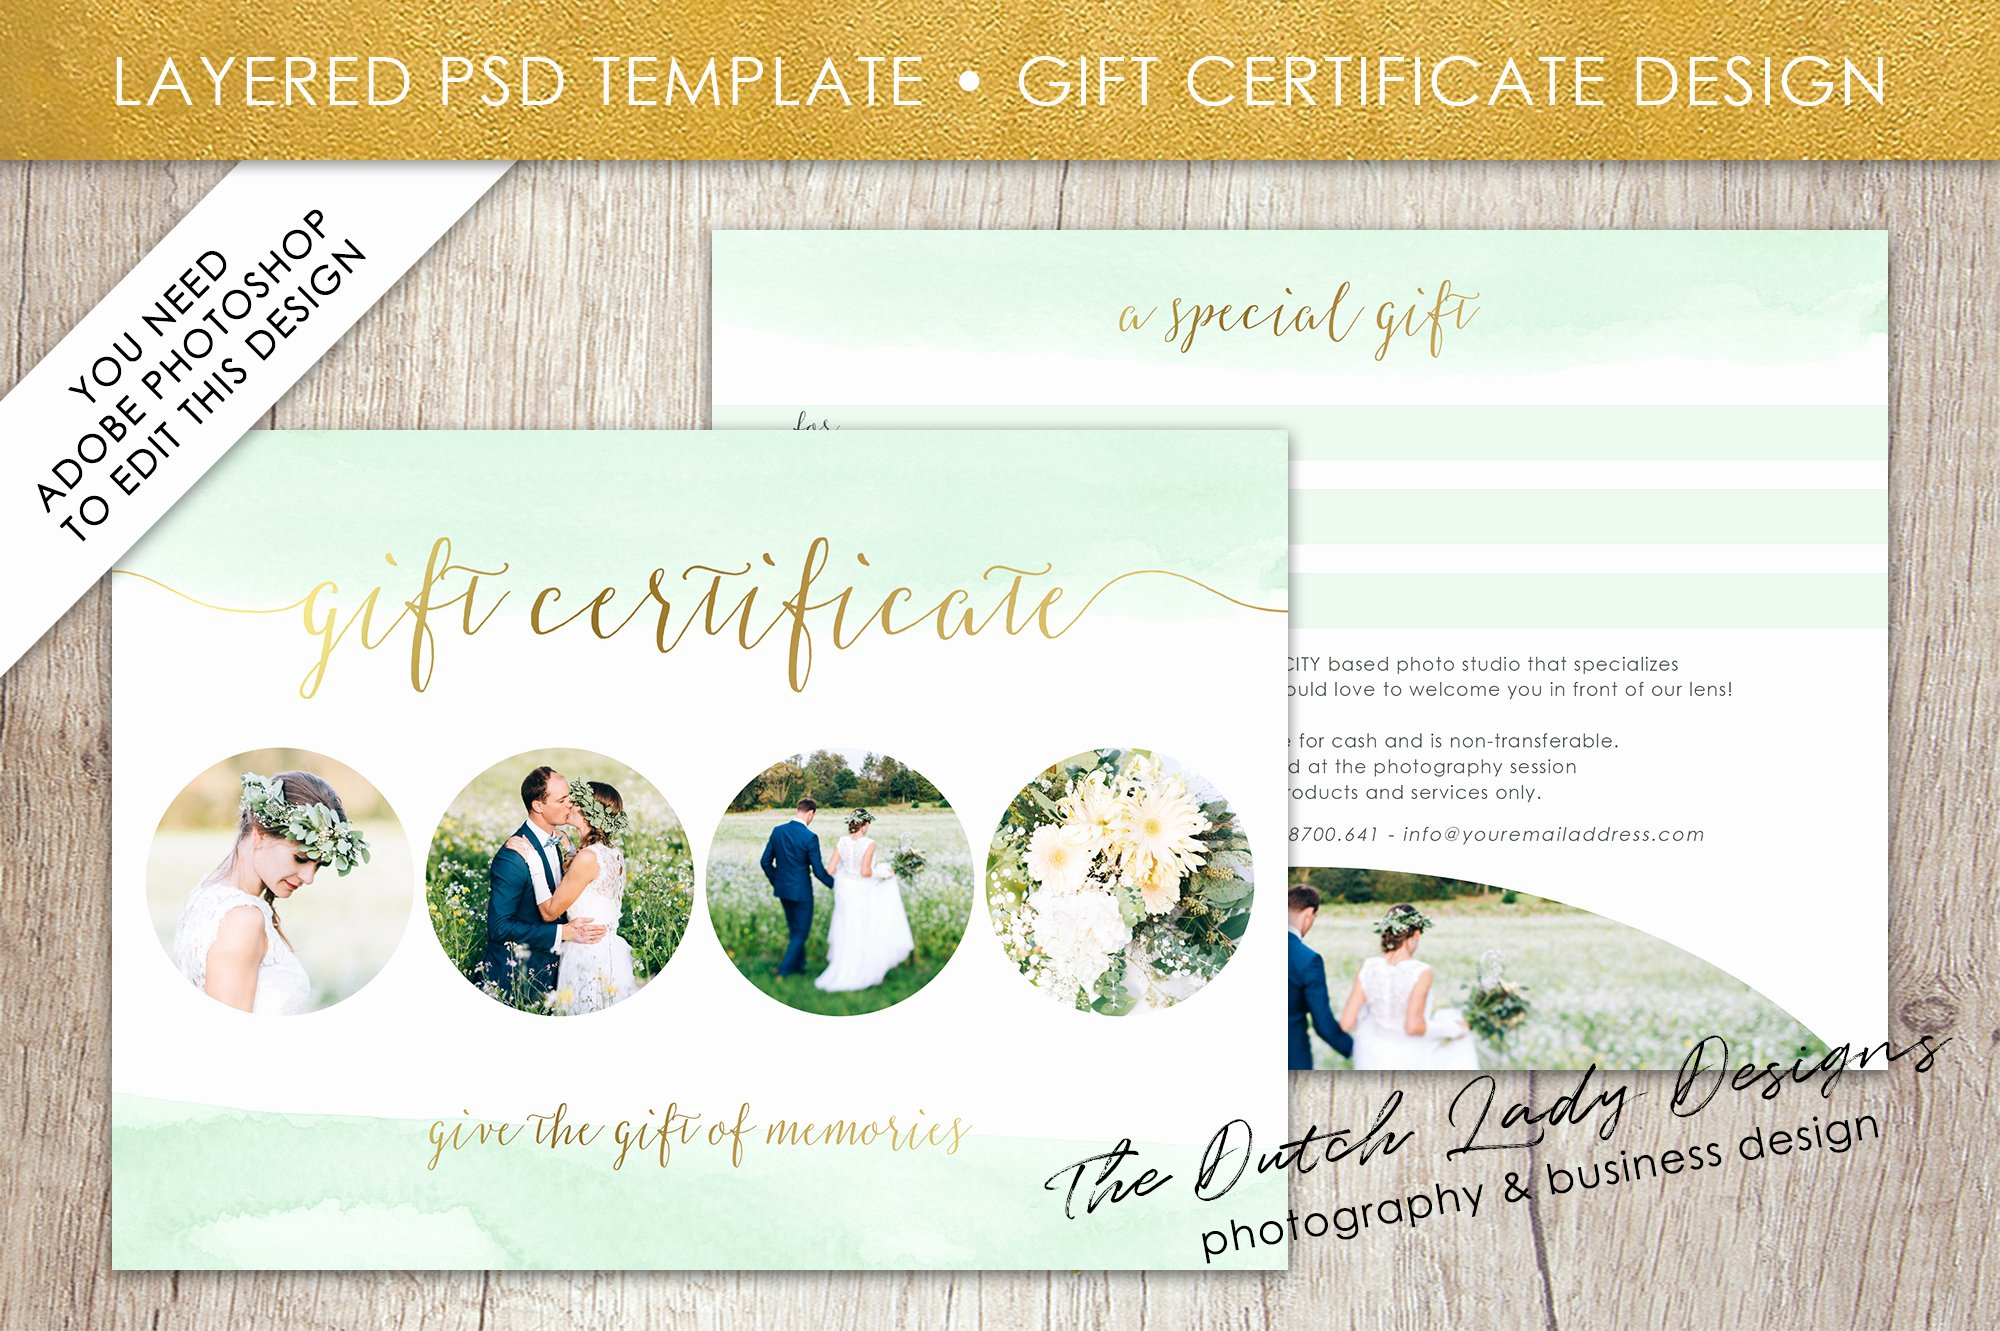 Gift Card Template Psd Inspirational Psd Gift Certificate Card Template Graphic by